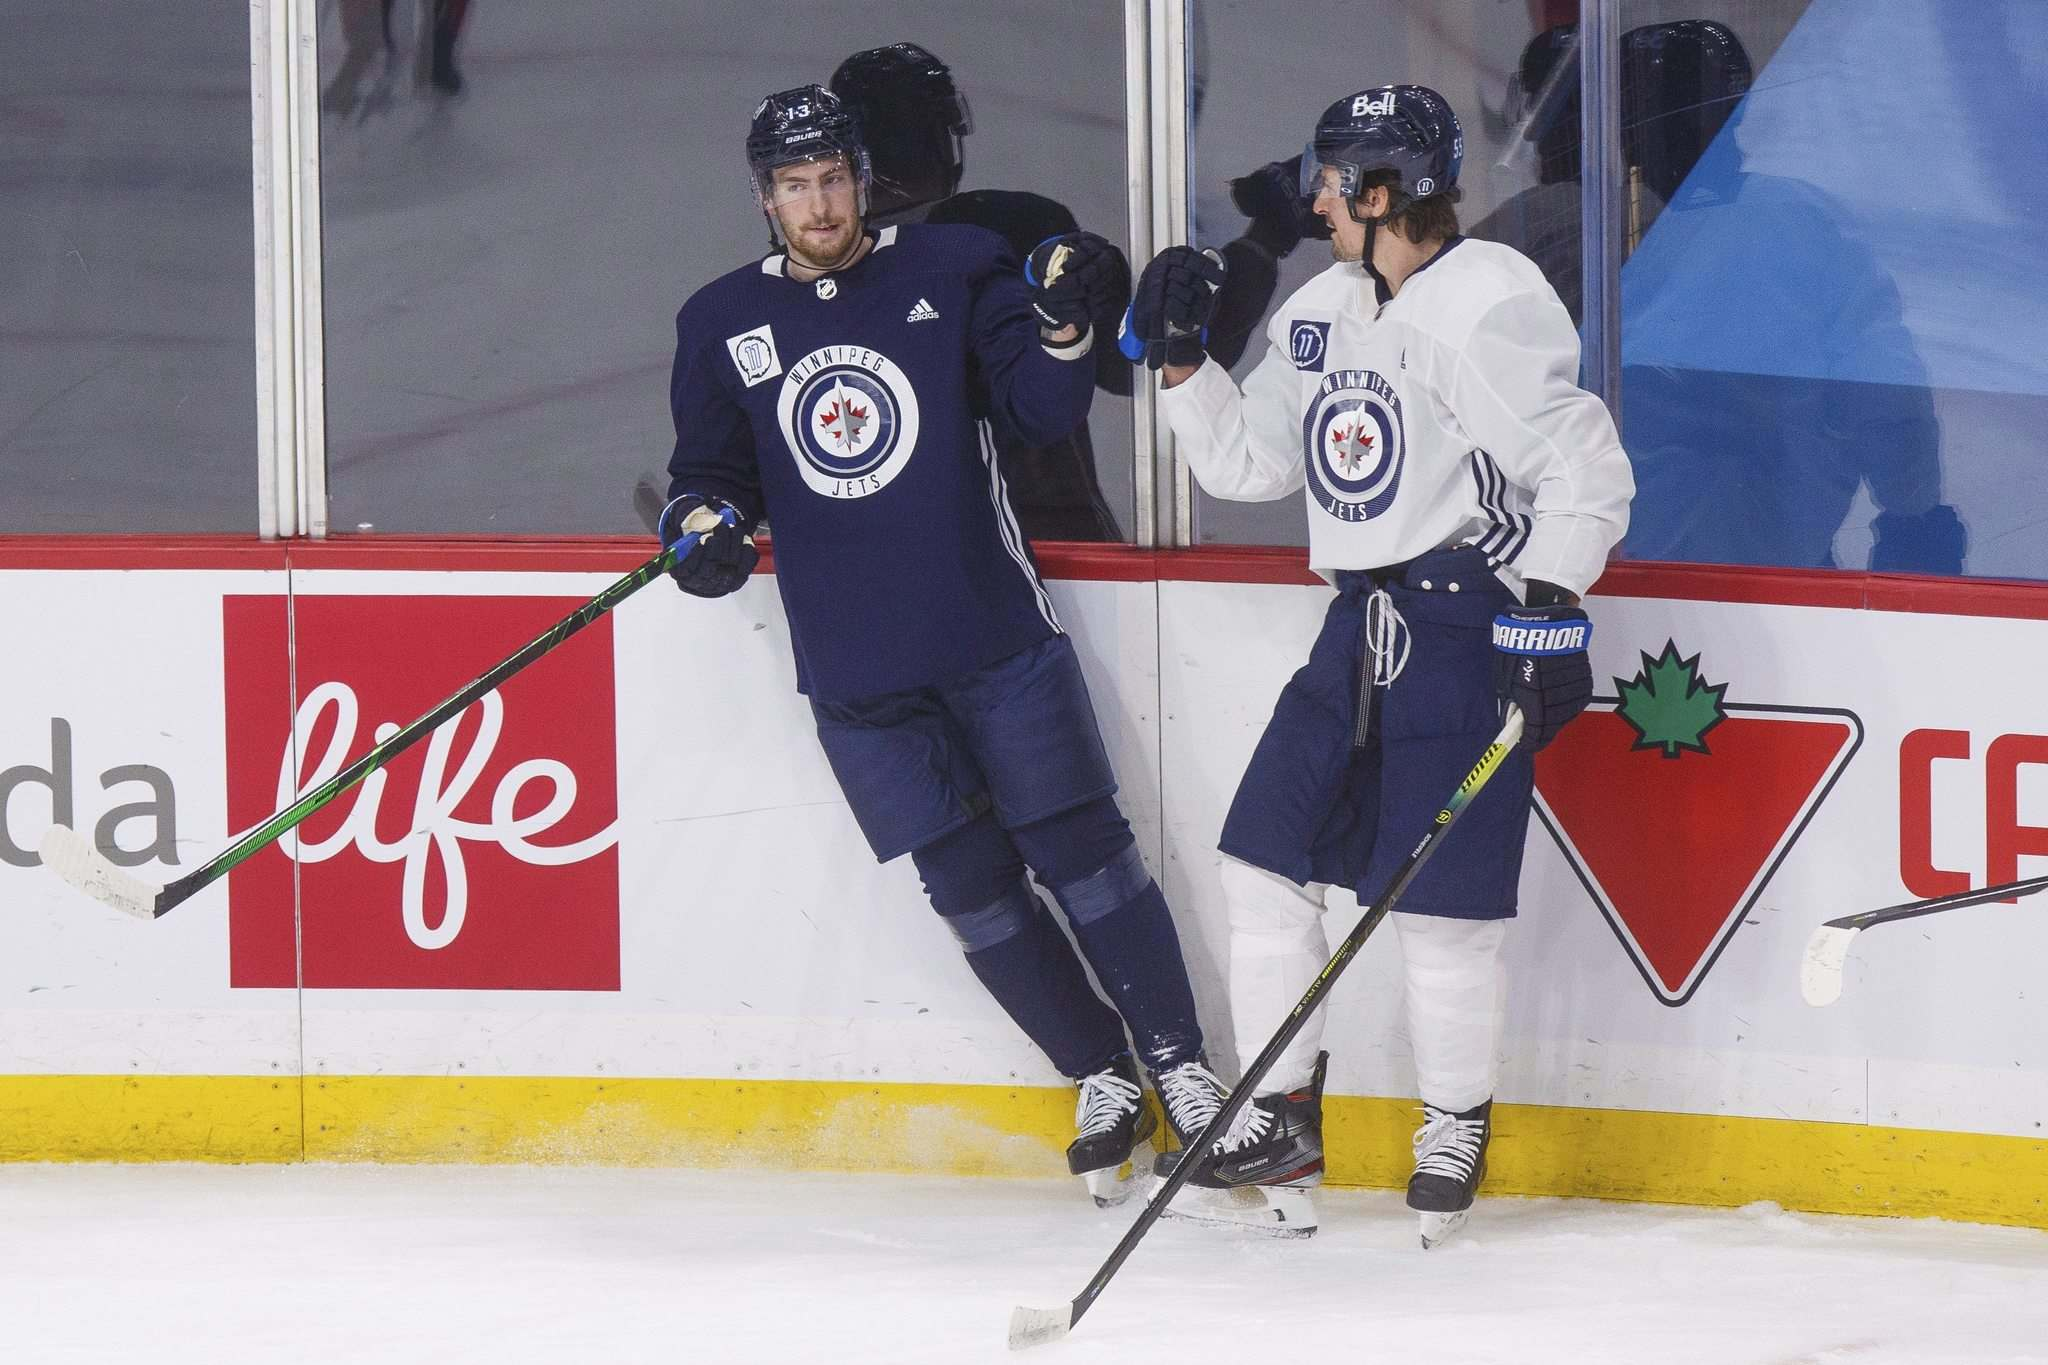 Dubois (left), the third-overall pick in the 2016 NHL draft, has 66 goals, 93 assists and 159 points in his first 239 NHL games. Mark Scheifele (right), the seventh-overall pick in the 2011 NHL draft, had 64 goals, 93 assists and 157 points in his first 239 NHL games.